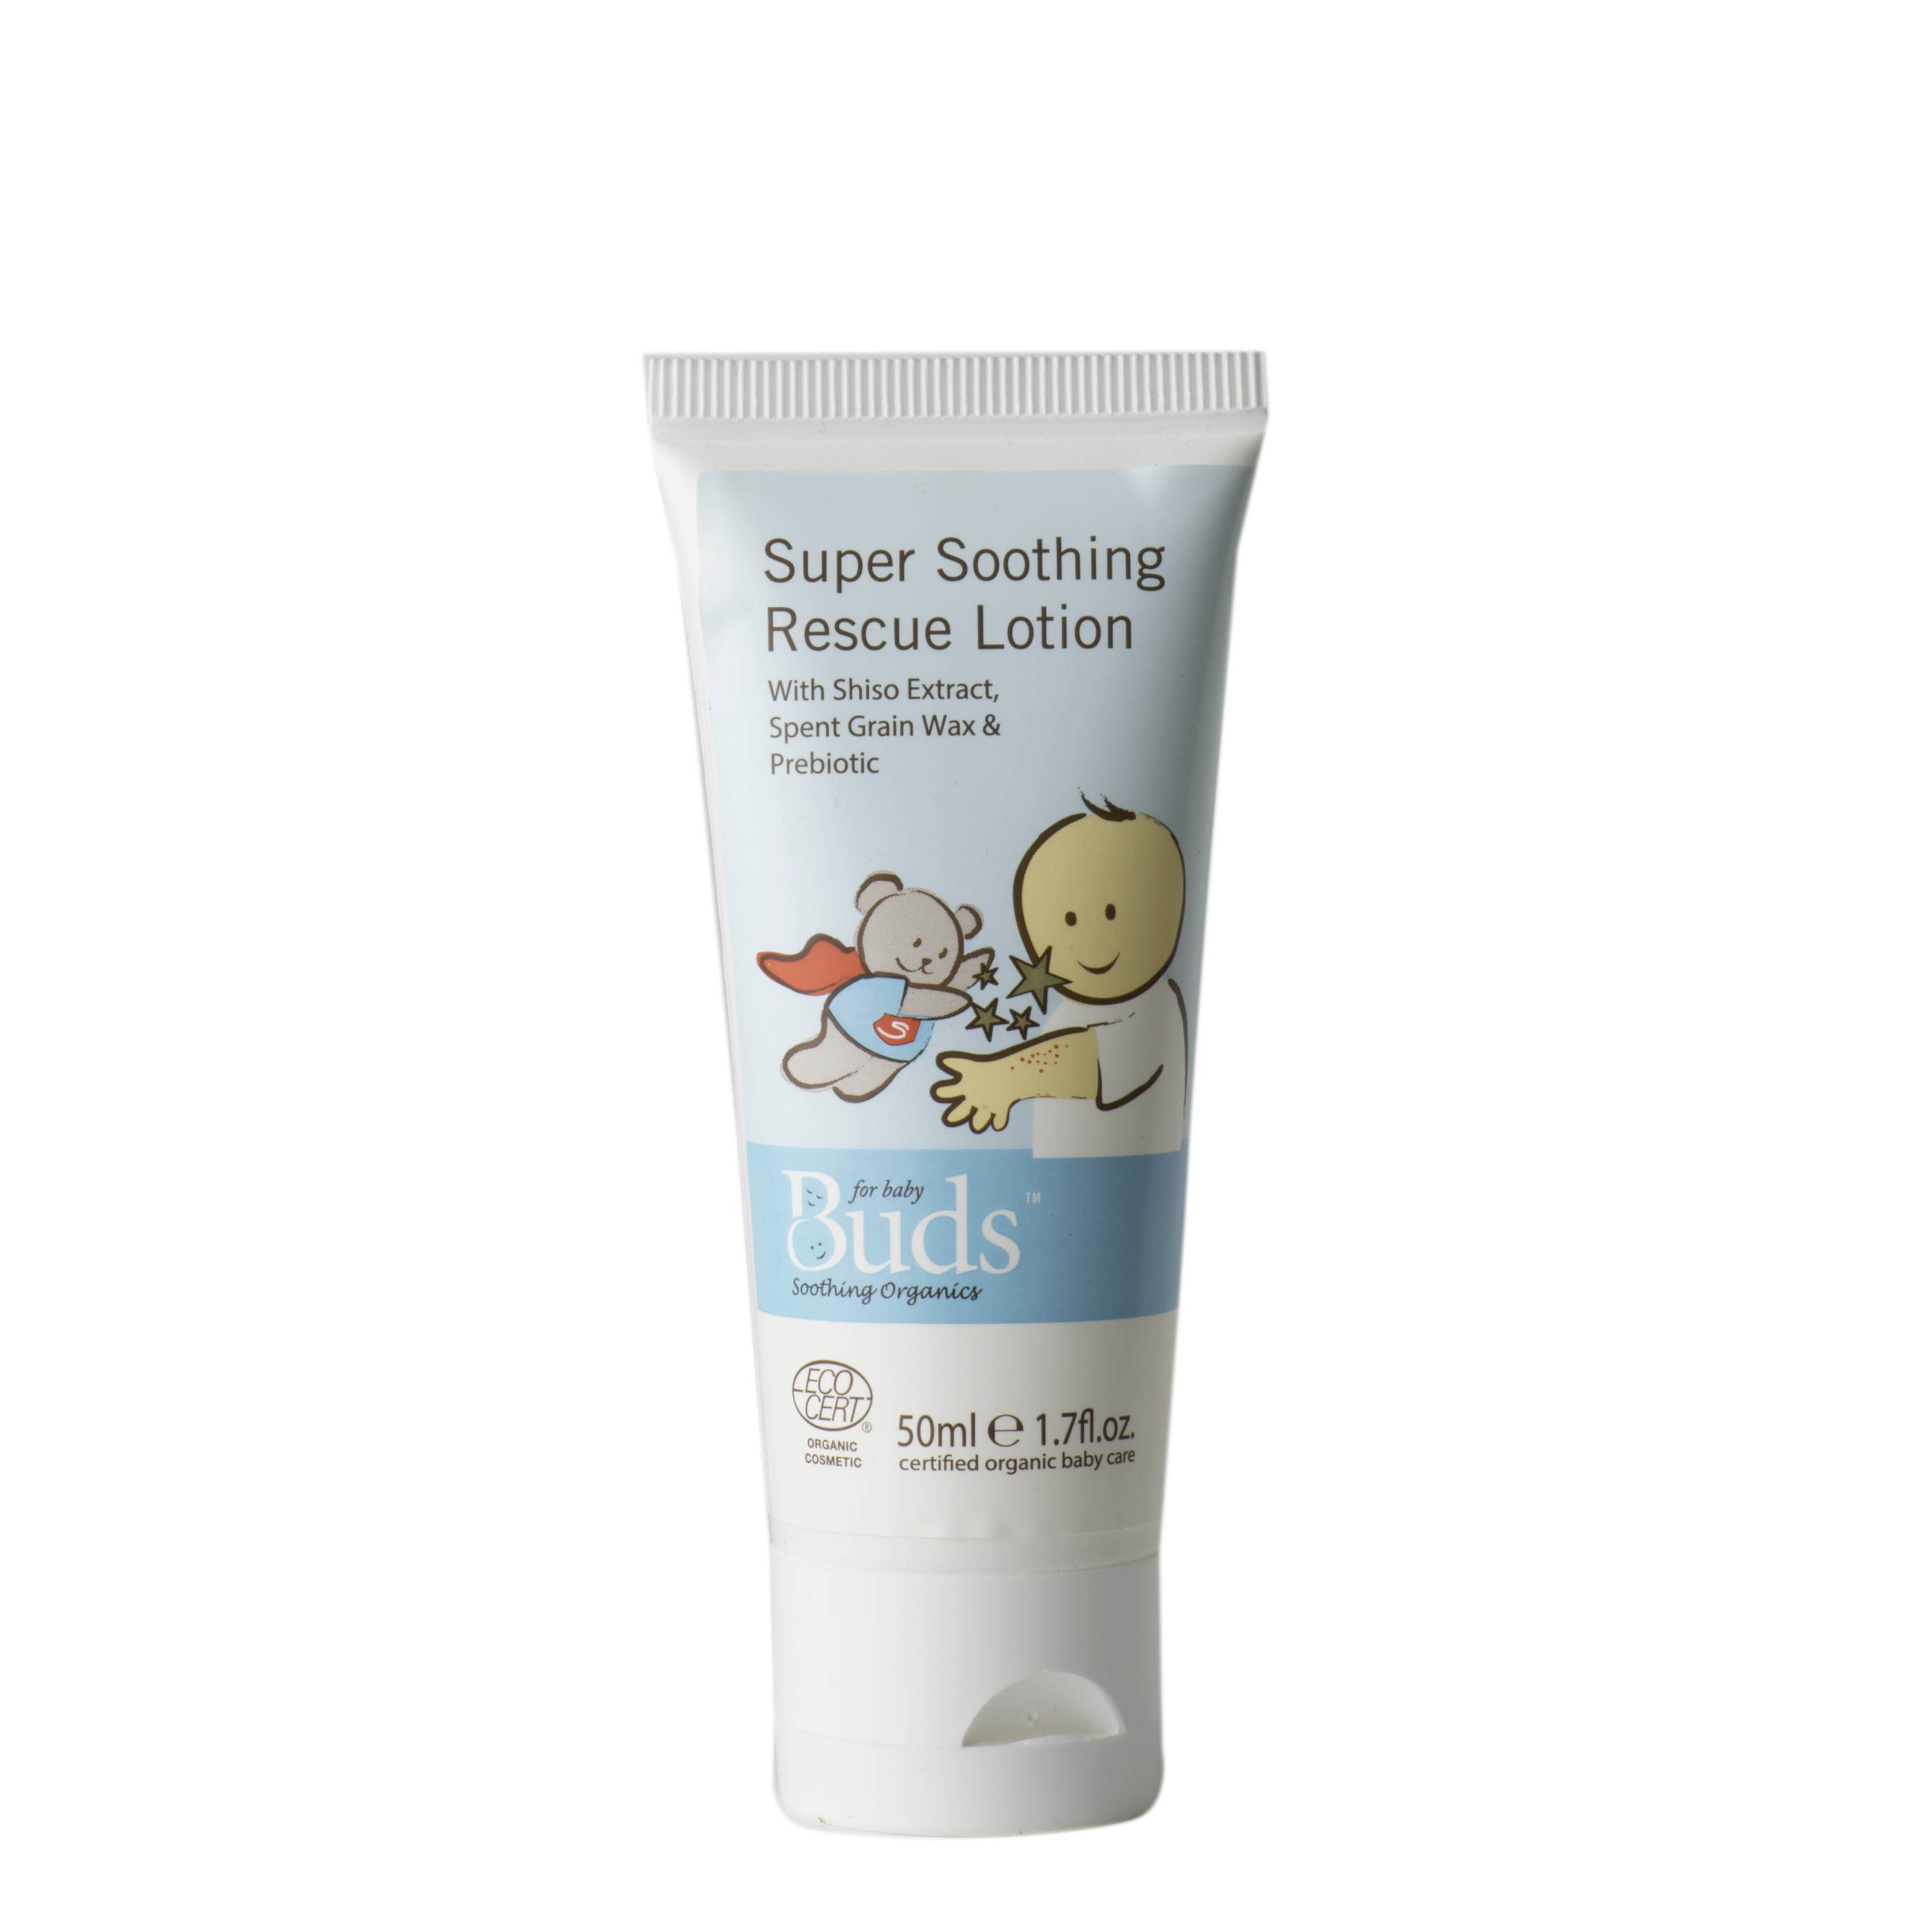 Index Of Yukibabyshopid Upload Buds Childrens Toothpaste 50ml 3 12 Year Green Apple 07 Bso Super Soothing Rescue Lotion